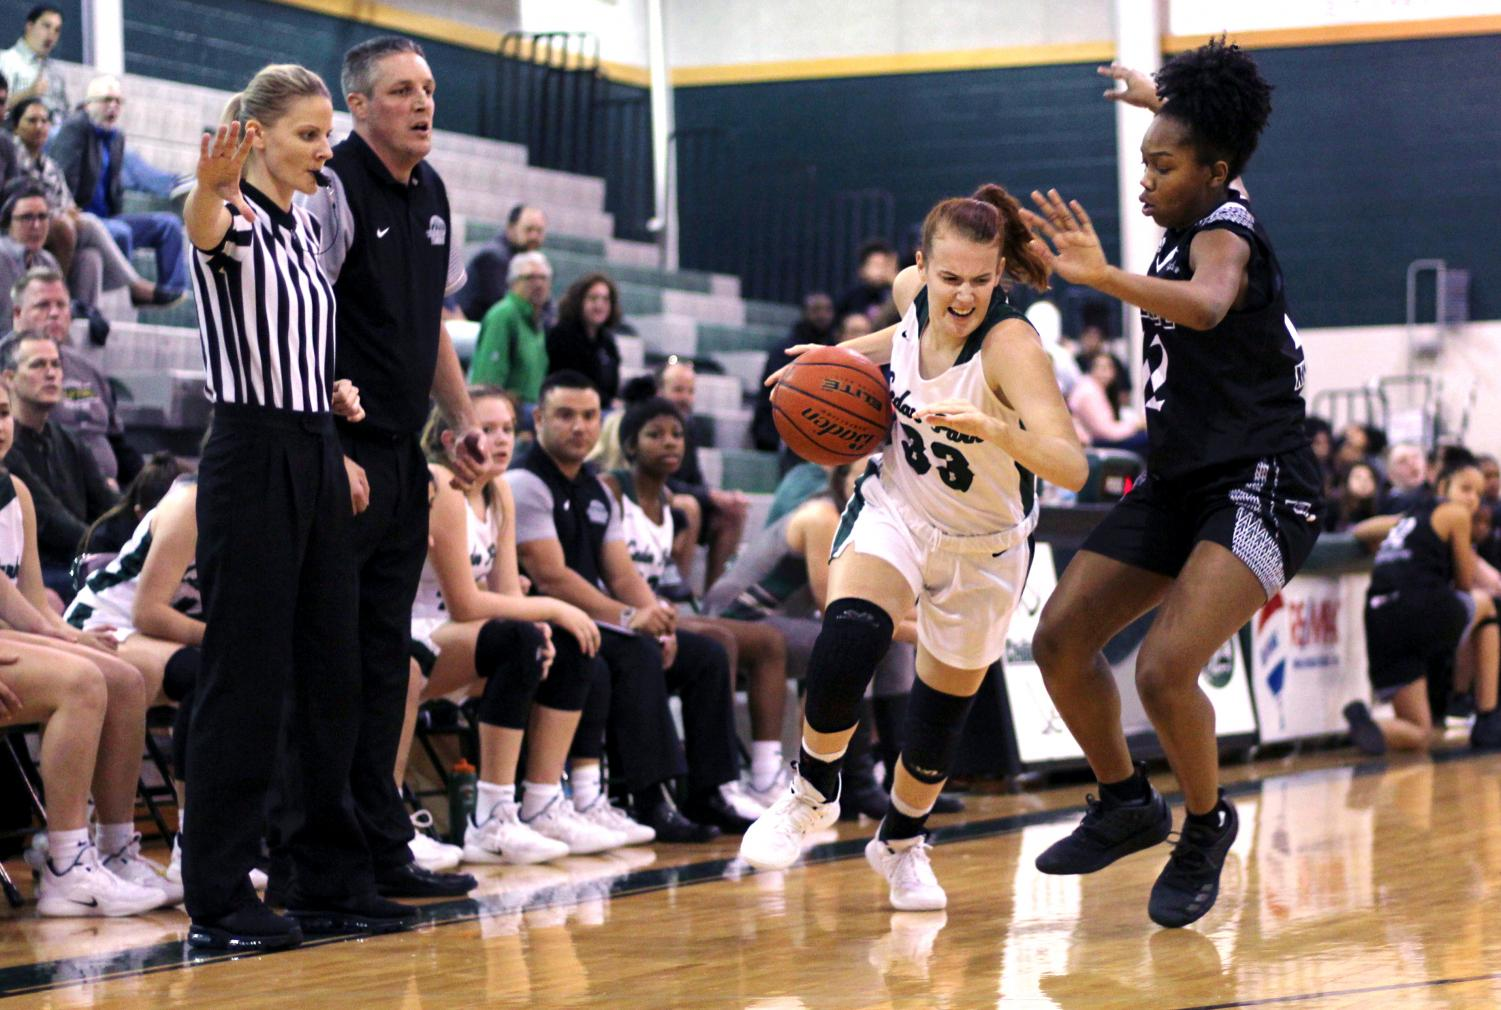 Hustling toward the basket, senior Callie Copeland powers thorugh 6A Cibolo Steele's defense on Nov. 30. Copeland was the team's captain and played shooting guard, where her primary goal was to score points for the team.